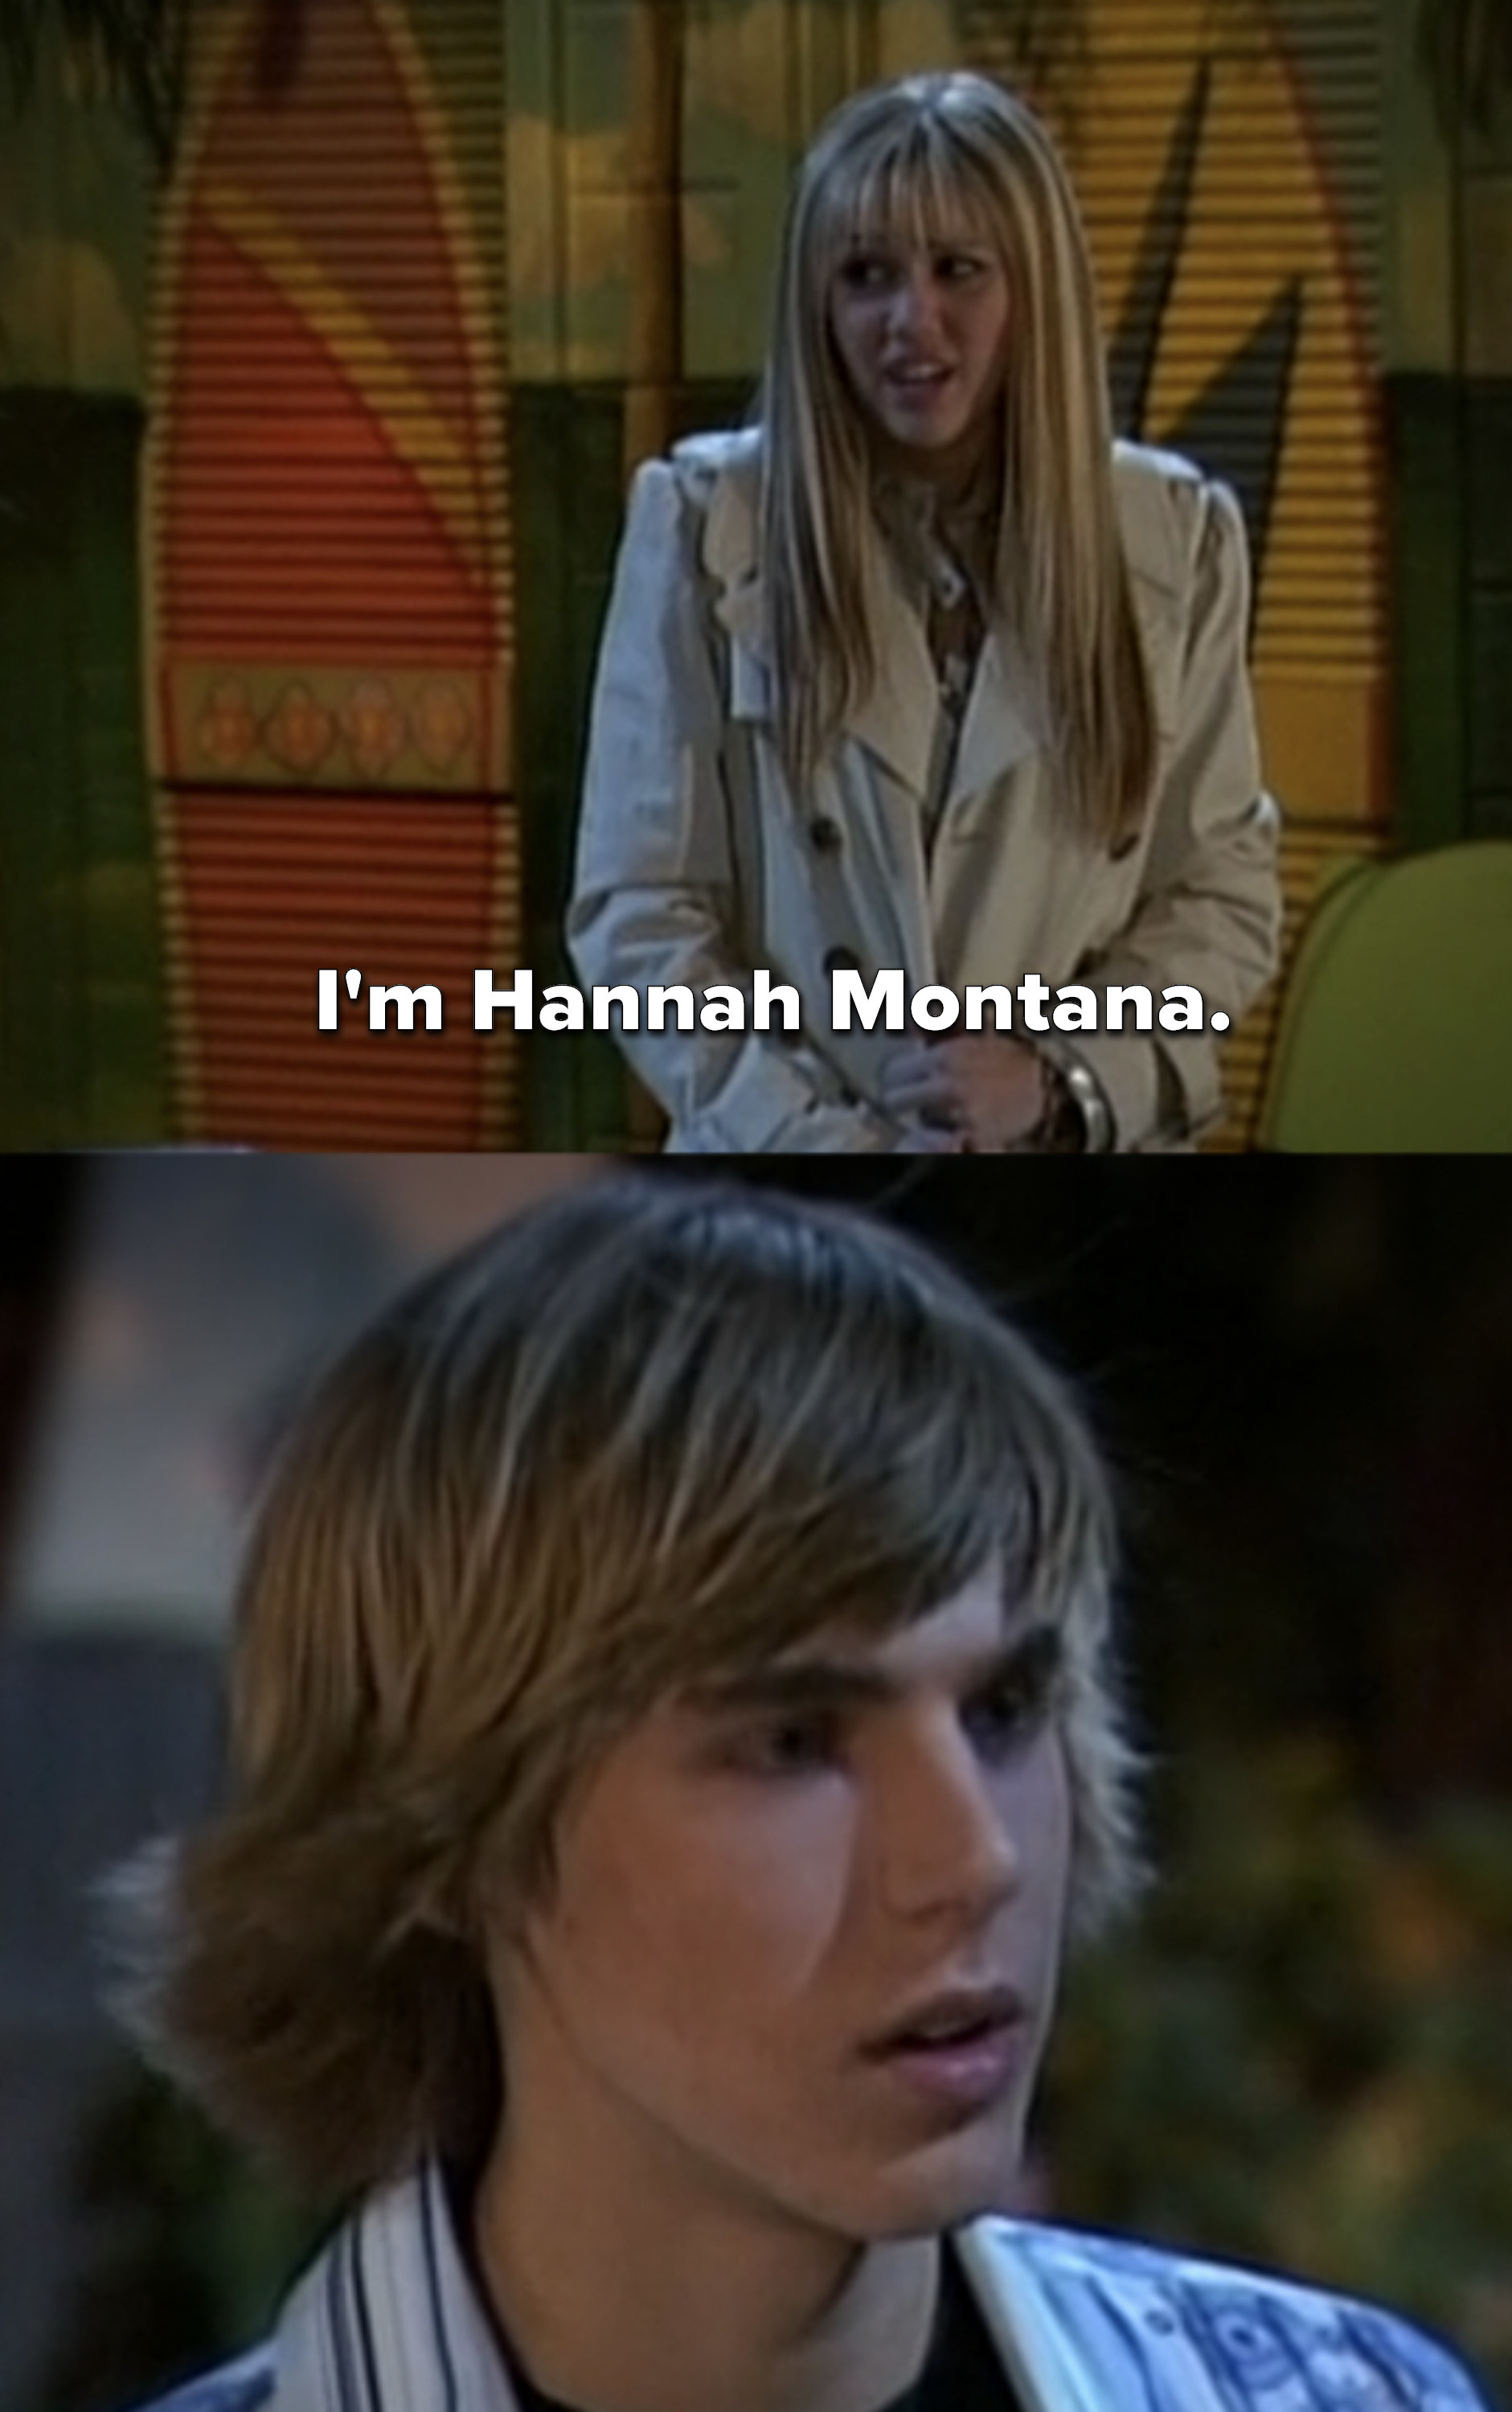 """Miley putting on her wig saying """"I'm Hannah Montana"""" to Jake, who looks shocked"""